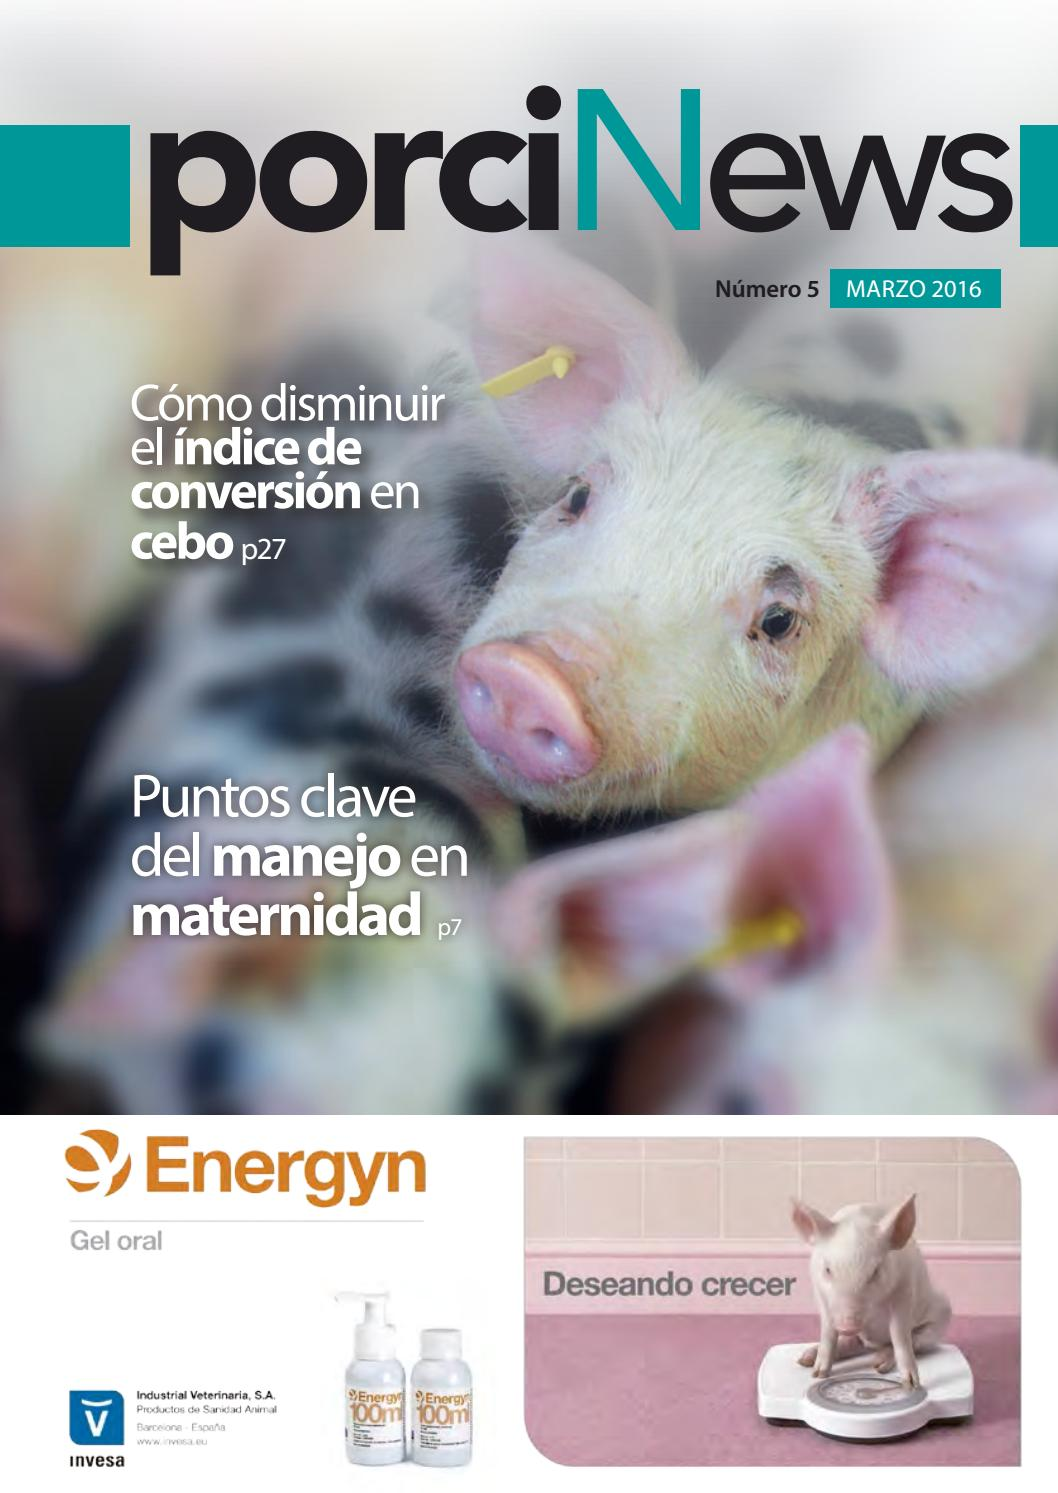 Porcinews marzo 2016 by agrinews - issuu